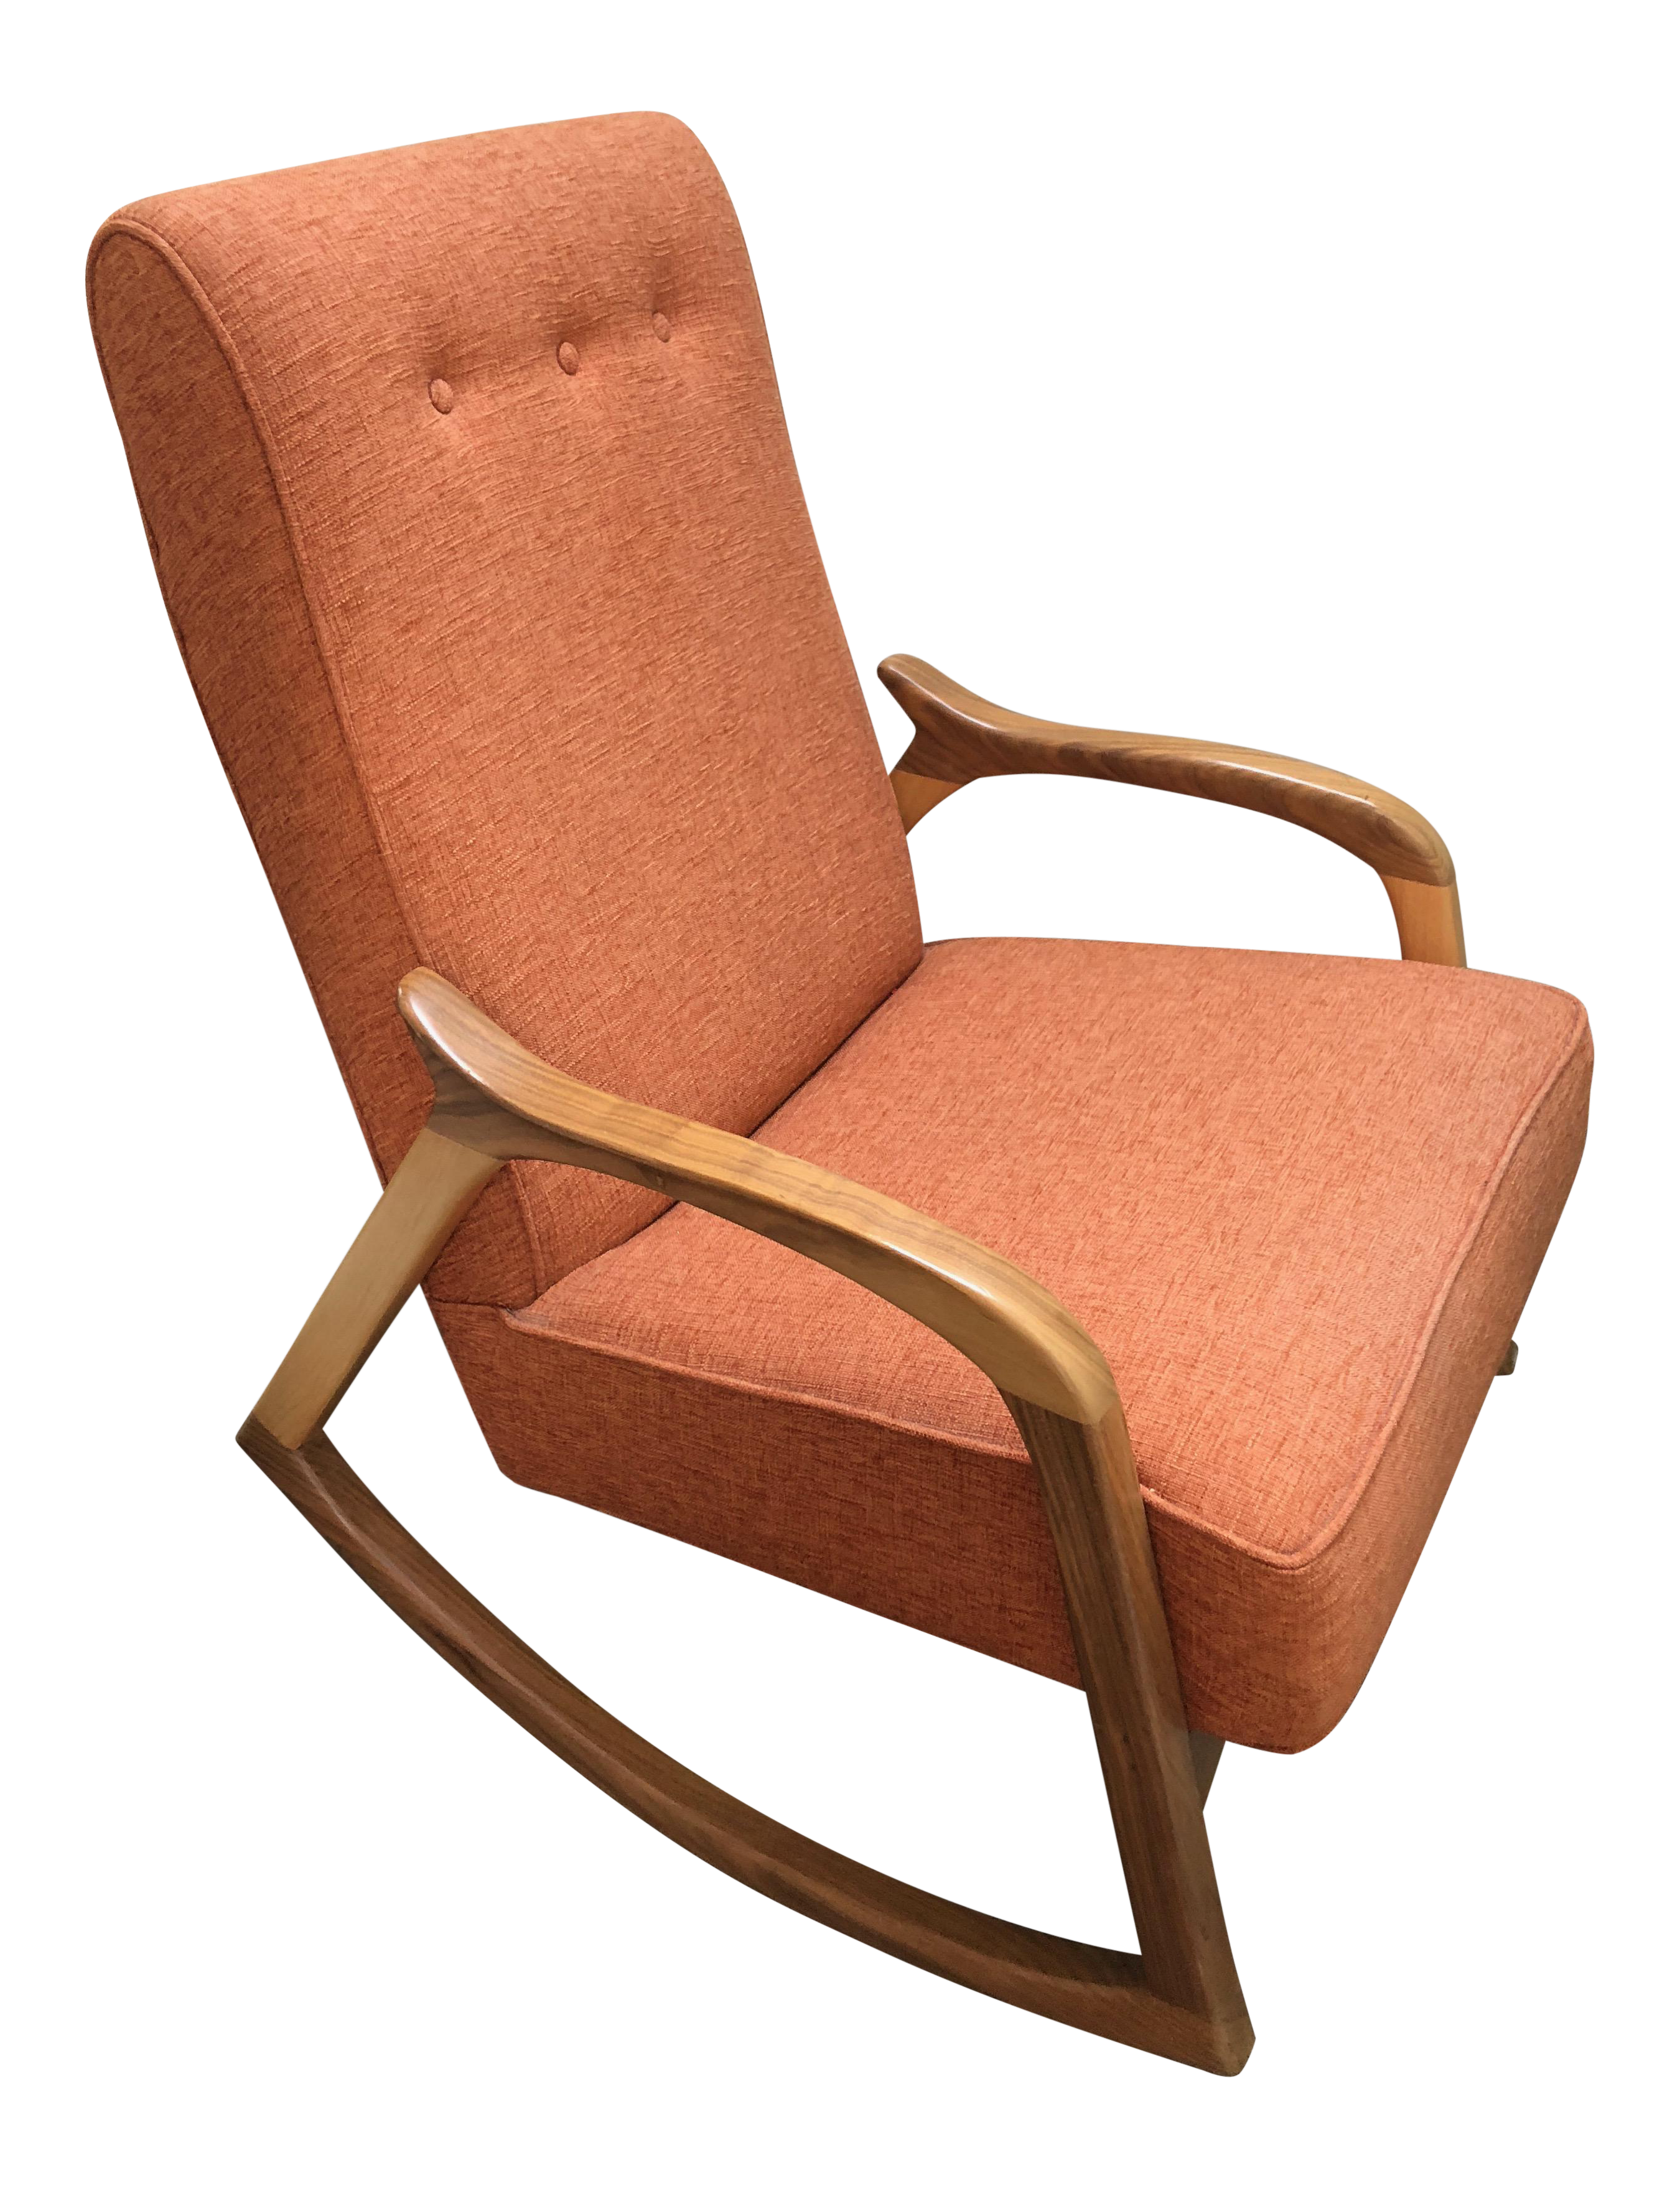 century sand products nye light rocking by mid chairs koncept rocker chair